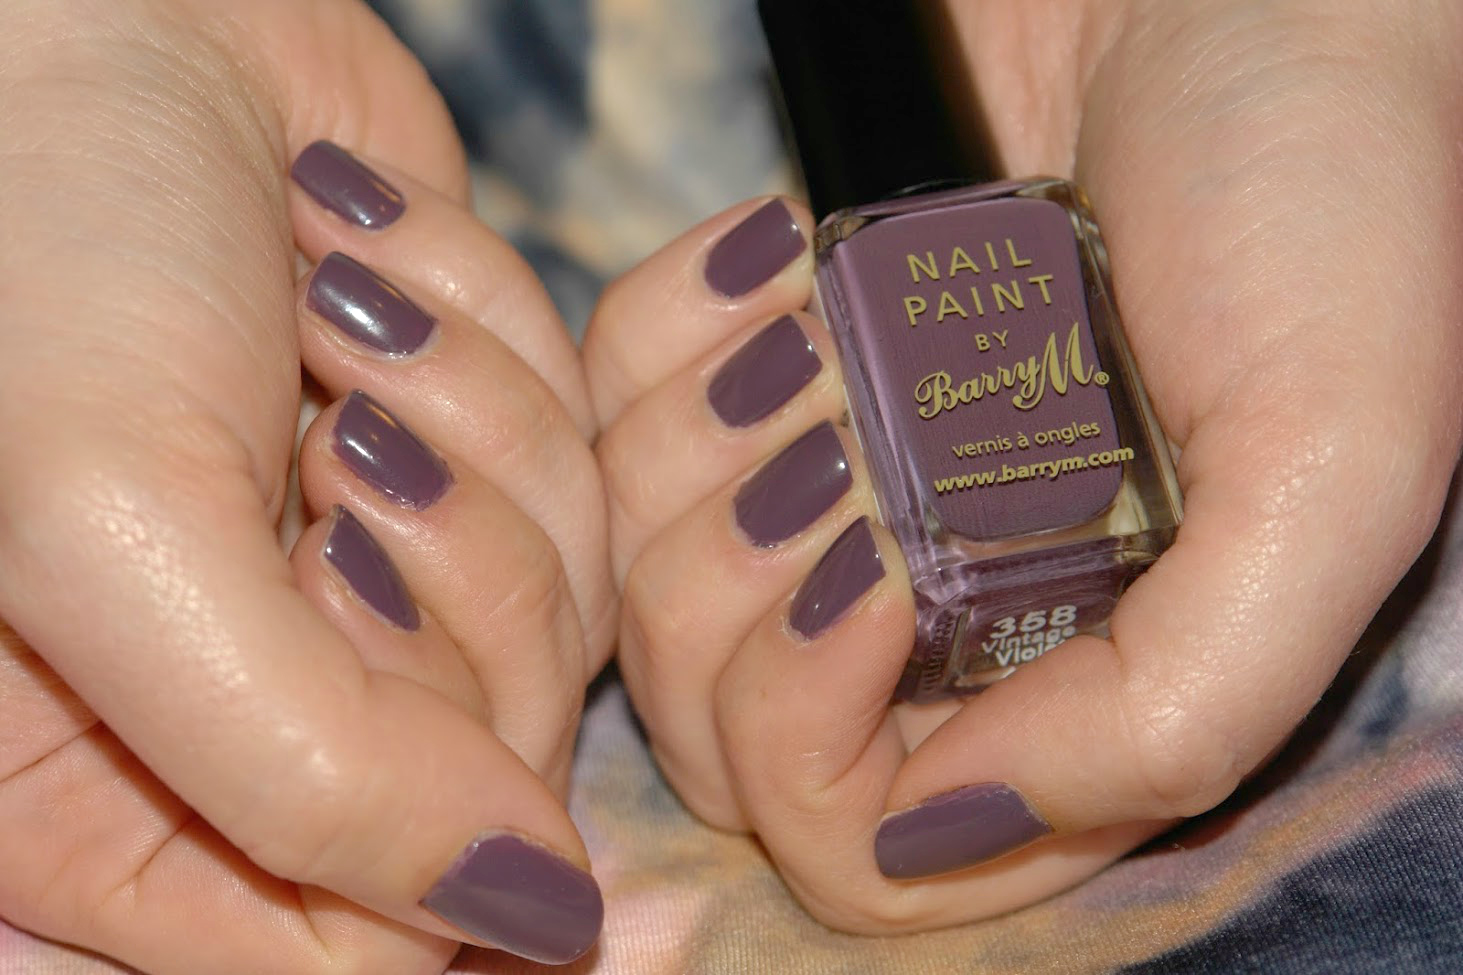 NAILS: Barry M Vintage Violet, Barry M, nail polish, nails, NOTD, purple, swatches,